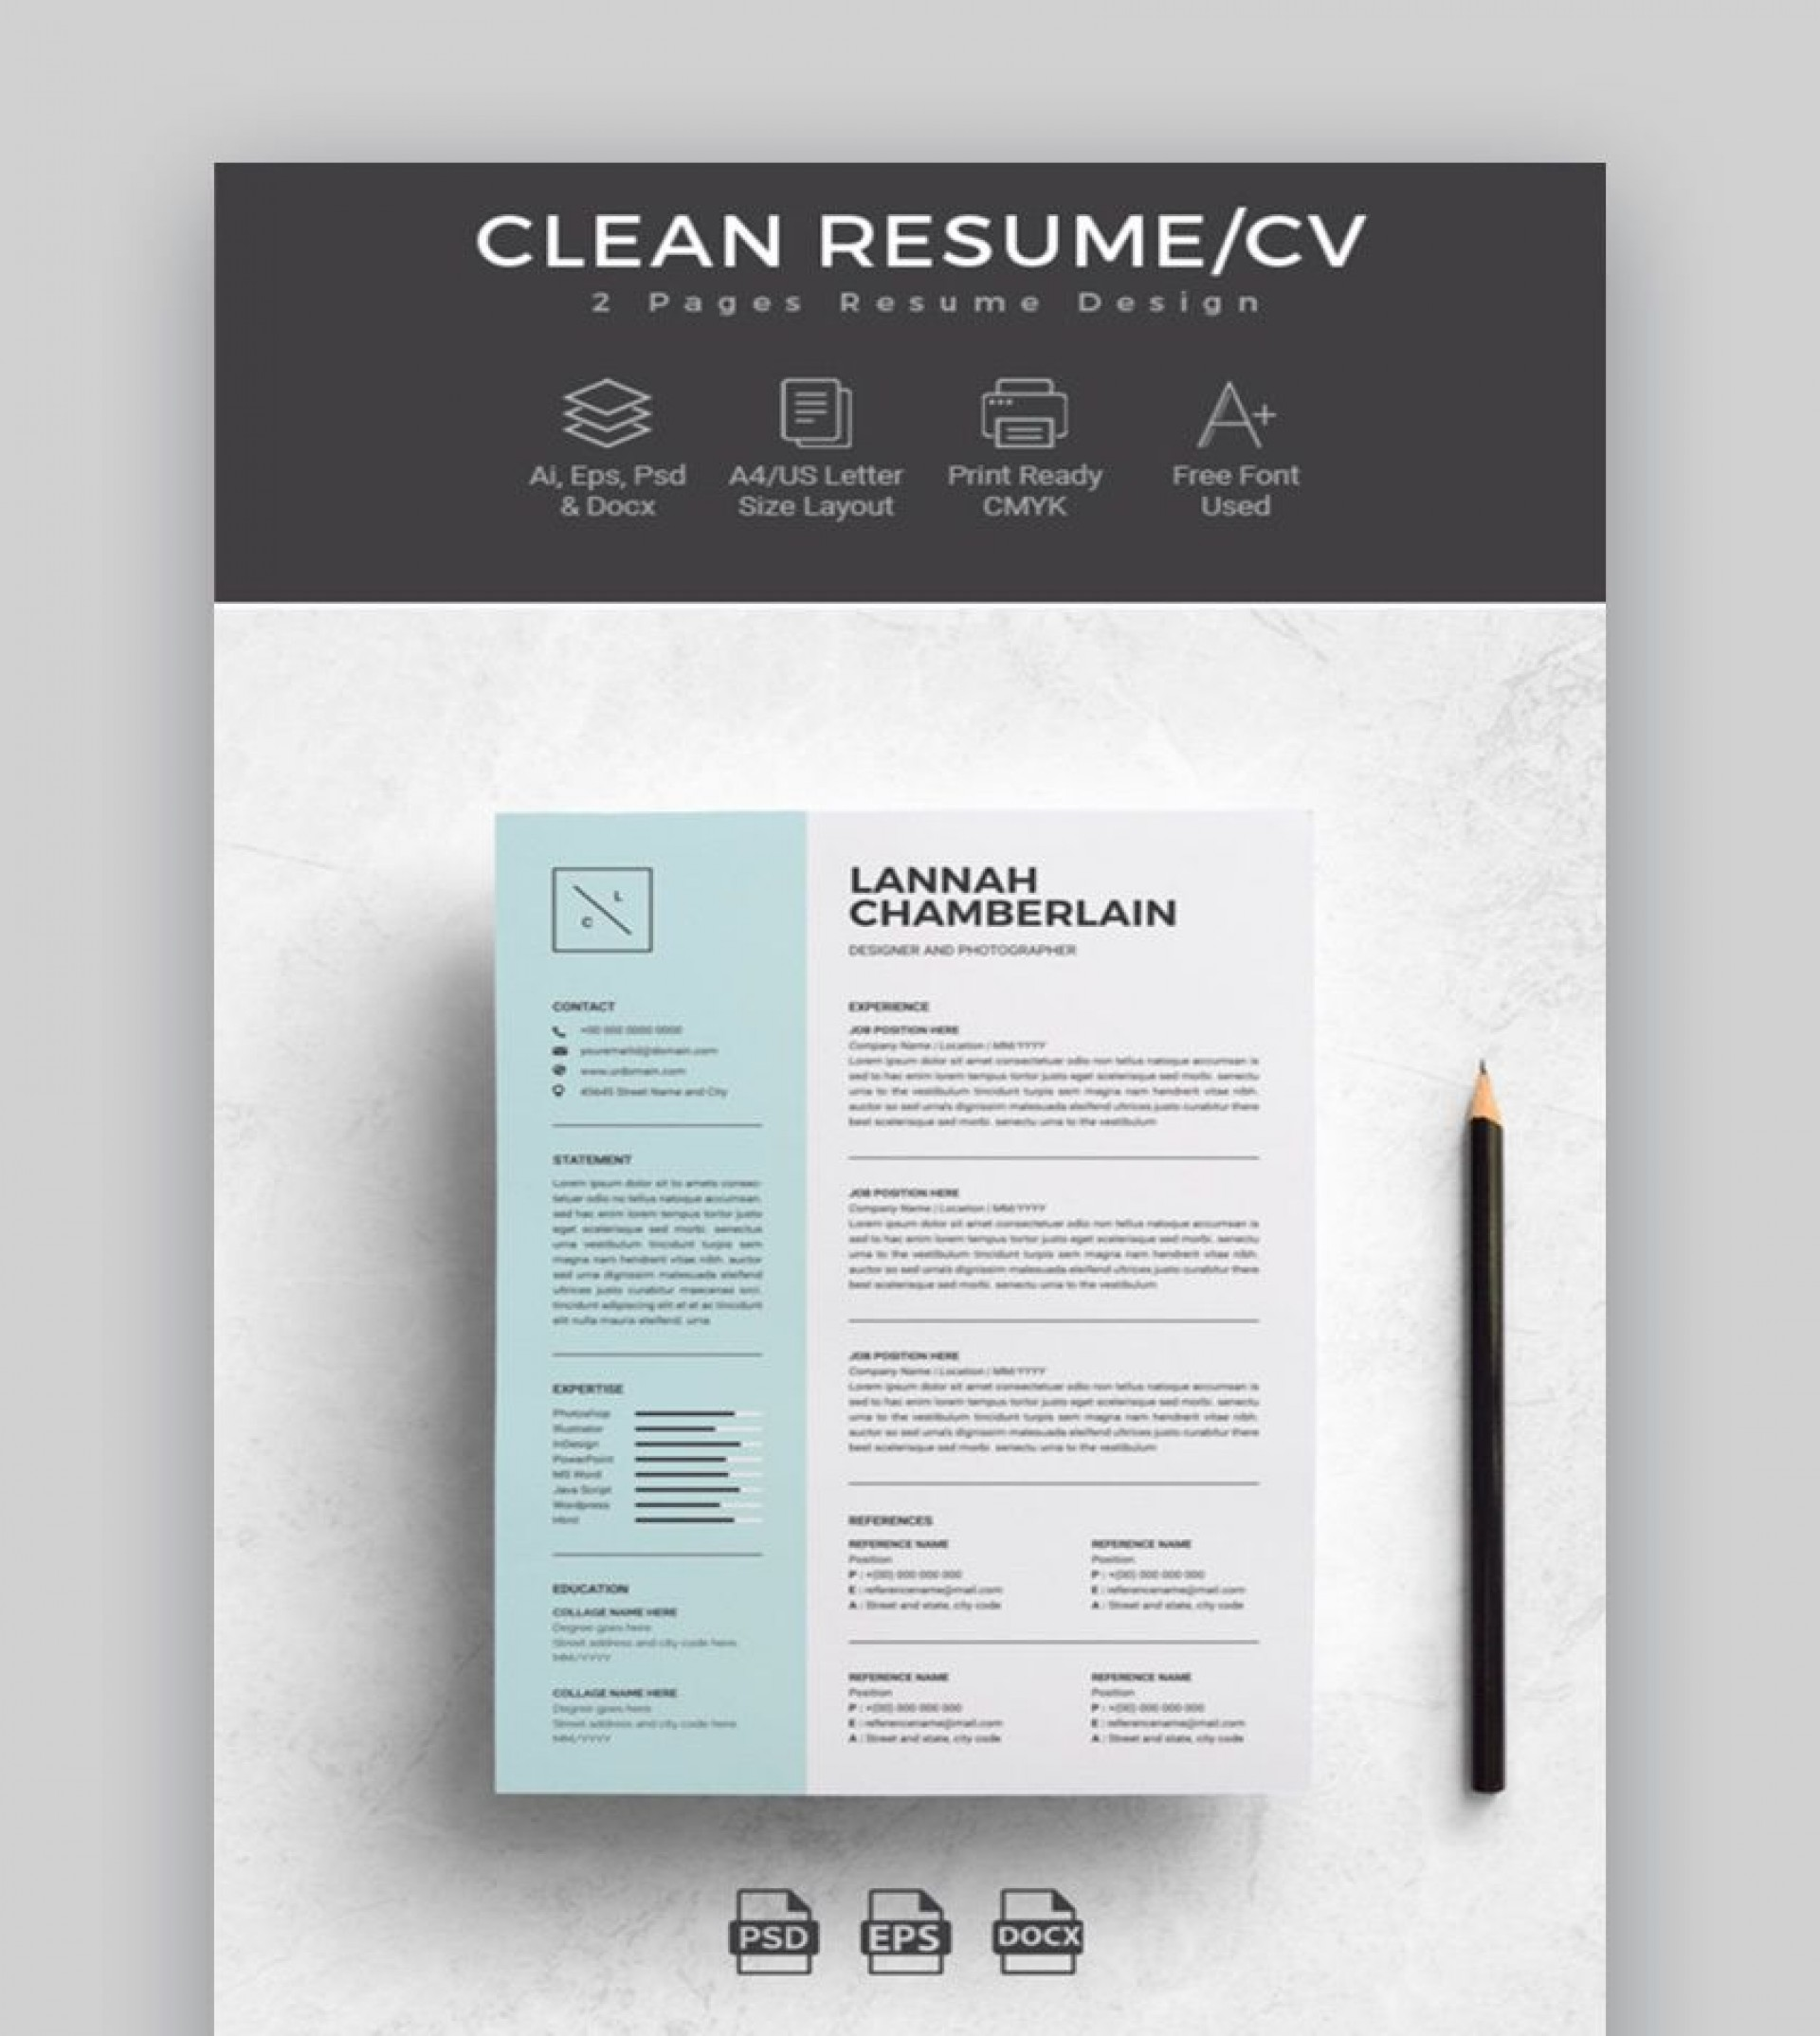 002 Outstanding Free M Word Resume Template Inspiration  Templates 50 Microsoft For Download 20191920